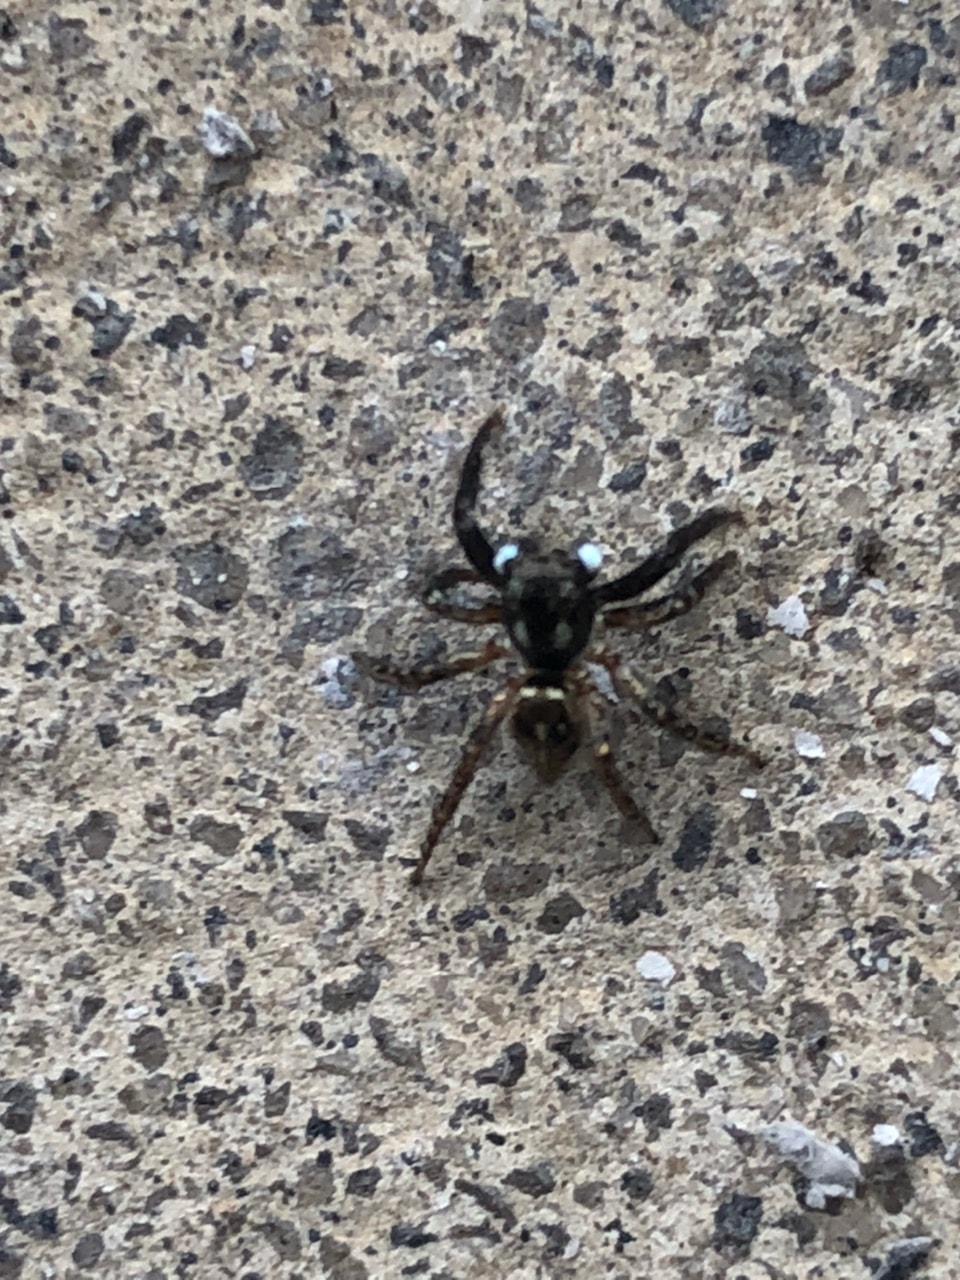 Picture of Anasaitis canosa (Twin-flagged Jumping Spider) - Dorsal